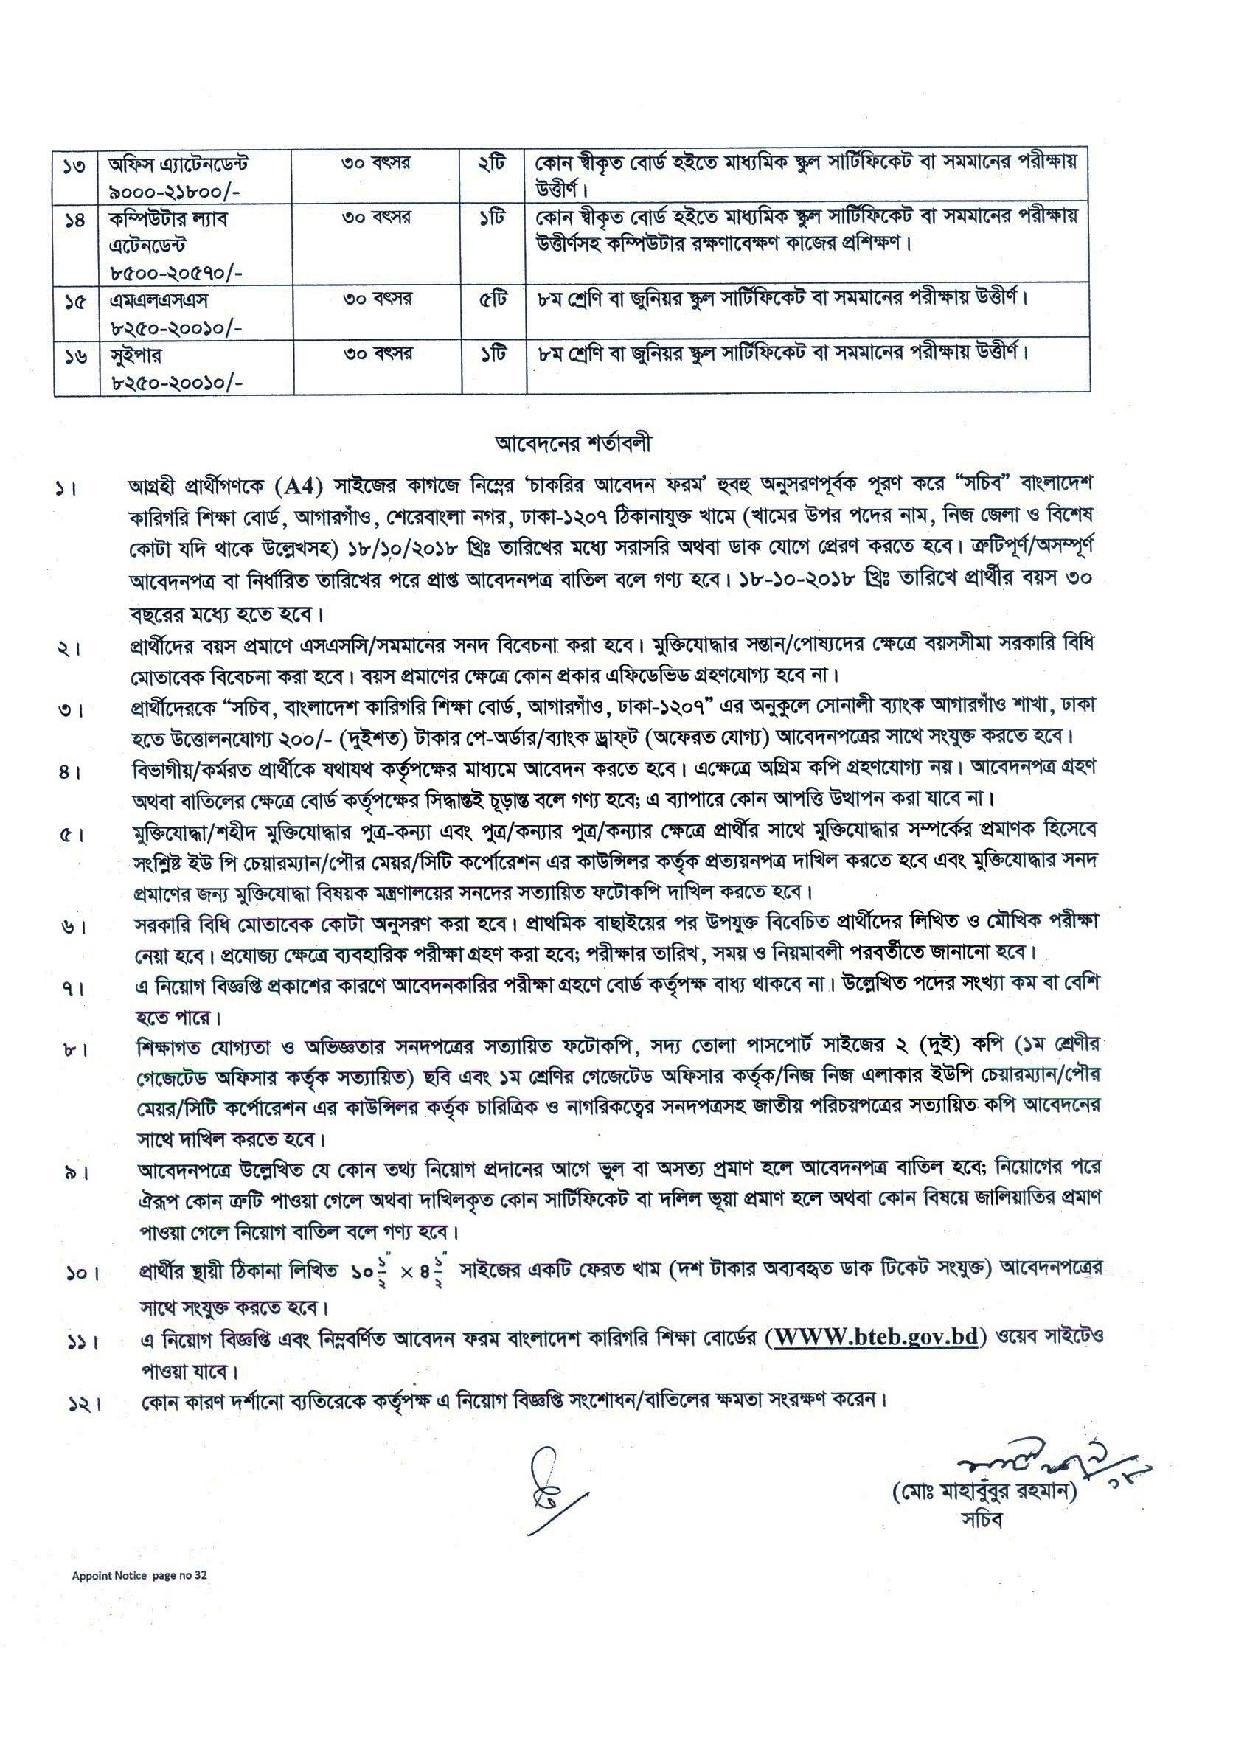 Bangladesh Technical Education Board (BTEB) Job Circular